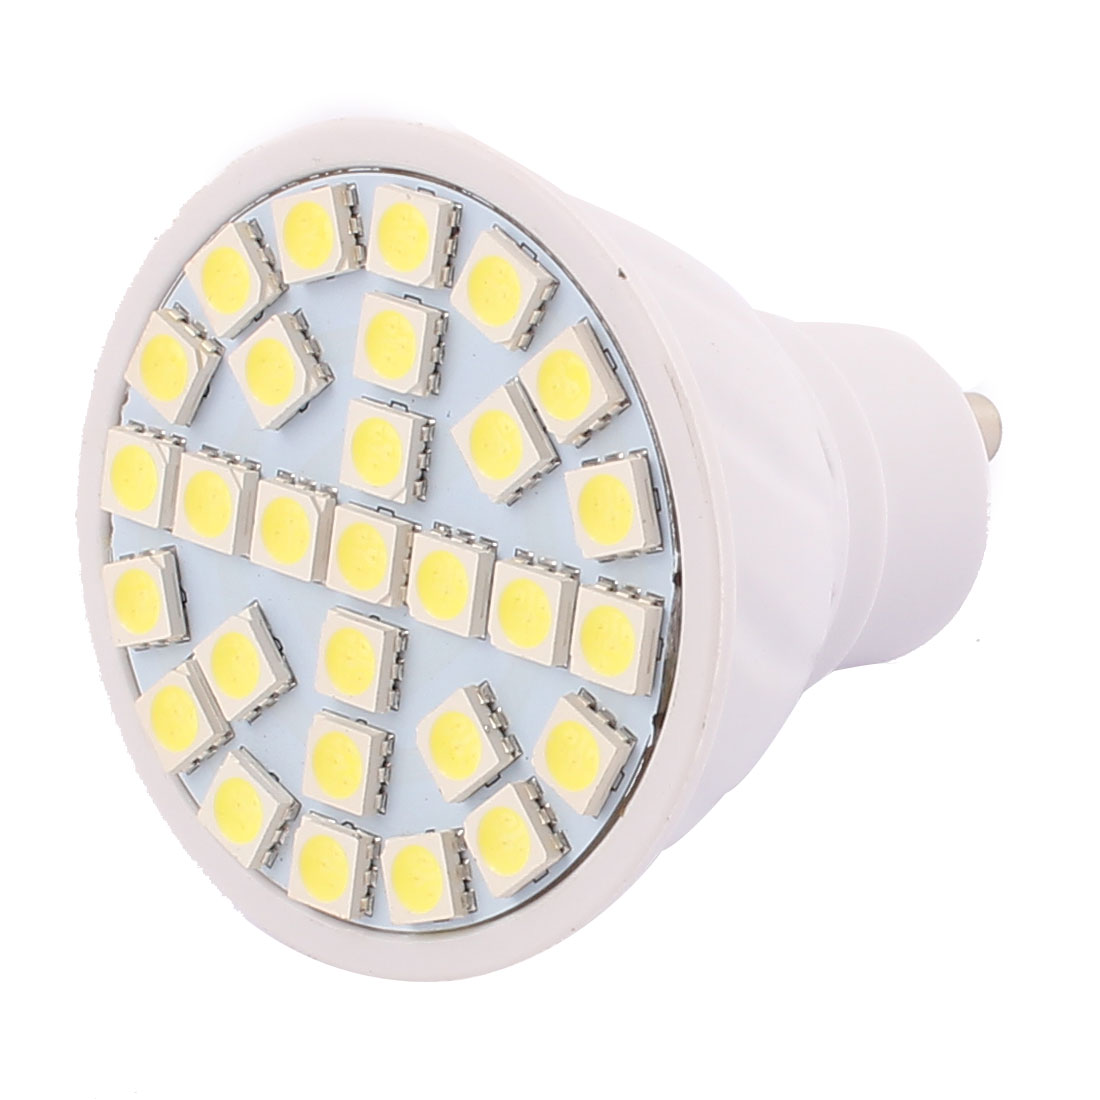 GU10 SMD 5050 29LEDs AC 220V 5W Plastic Energy Saving LED Lamps Bulb White